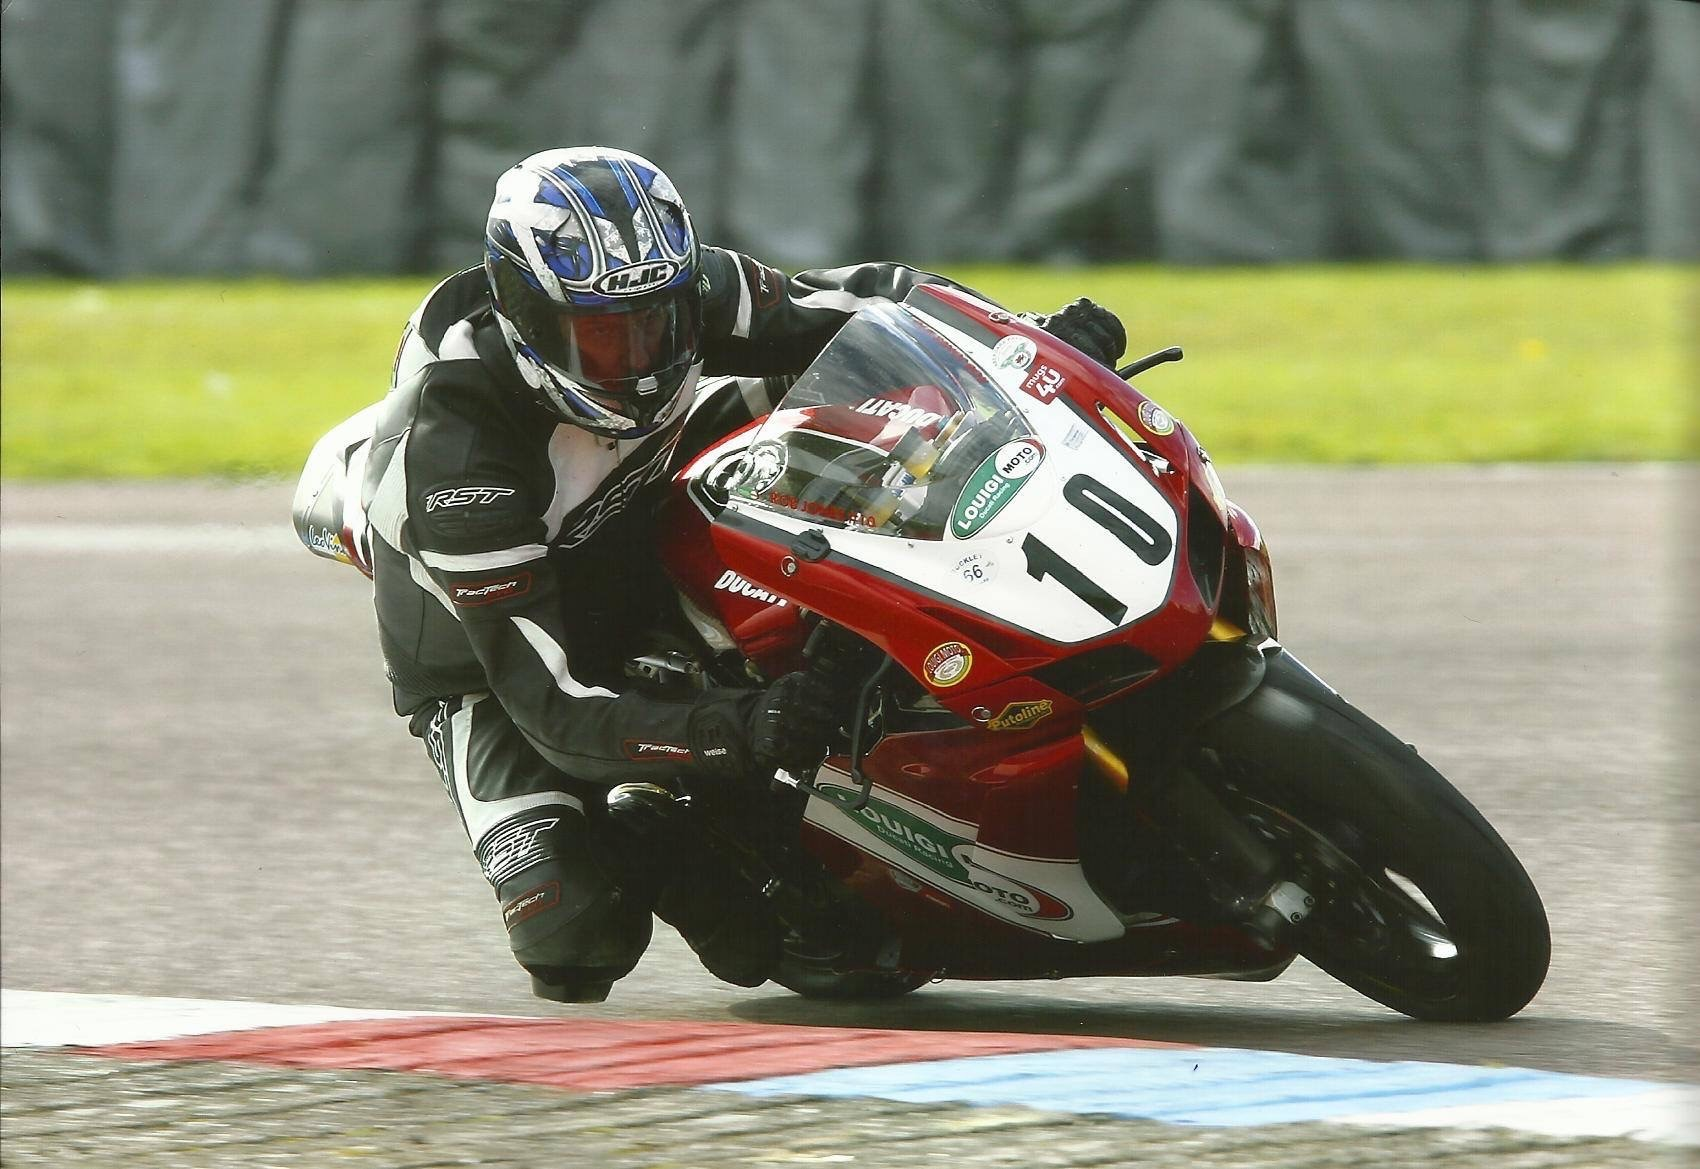 CHIEF MOTORCYCLE INSTRUCTOR ROB JONES CONFIRMED FOR COMBE TV